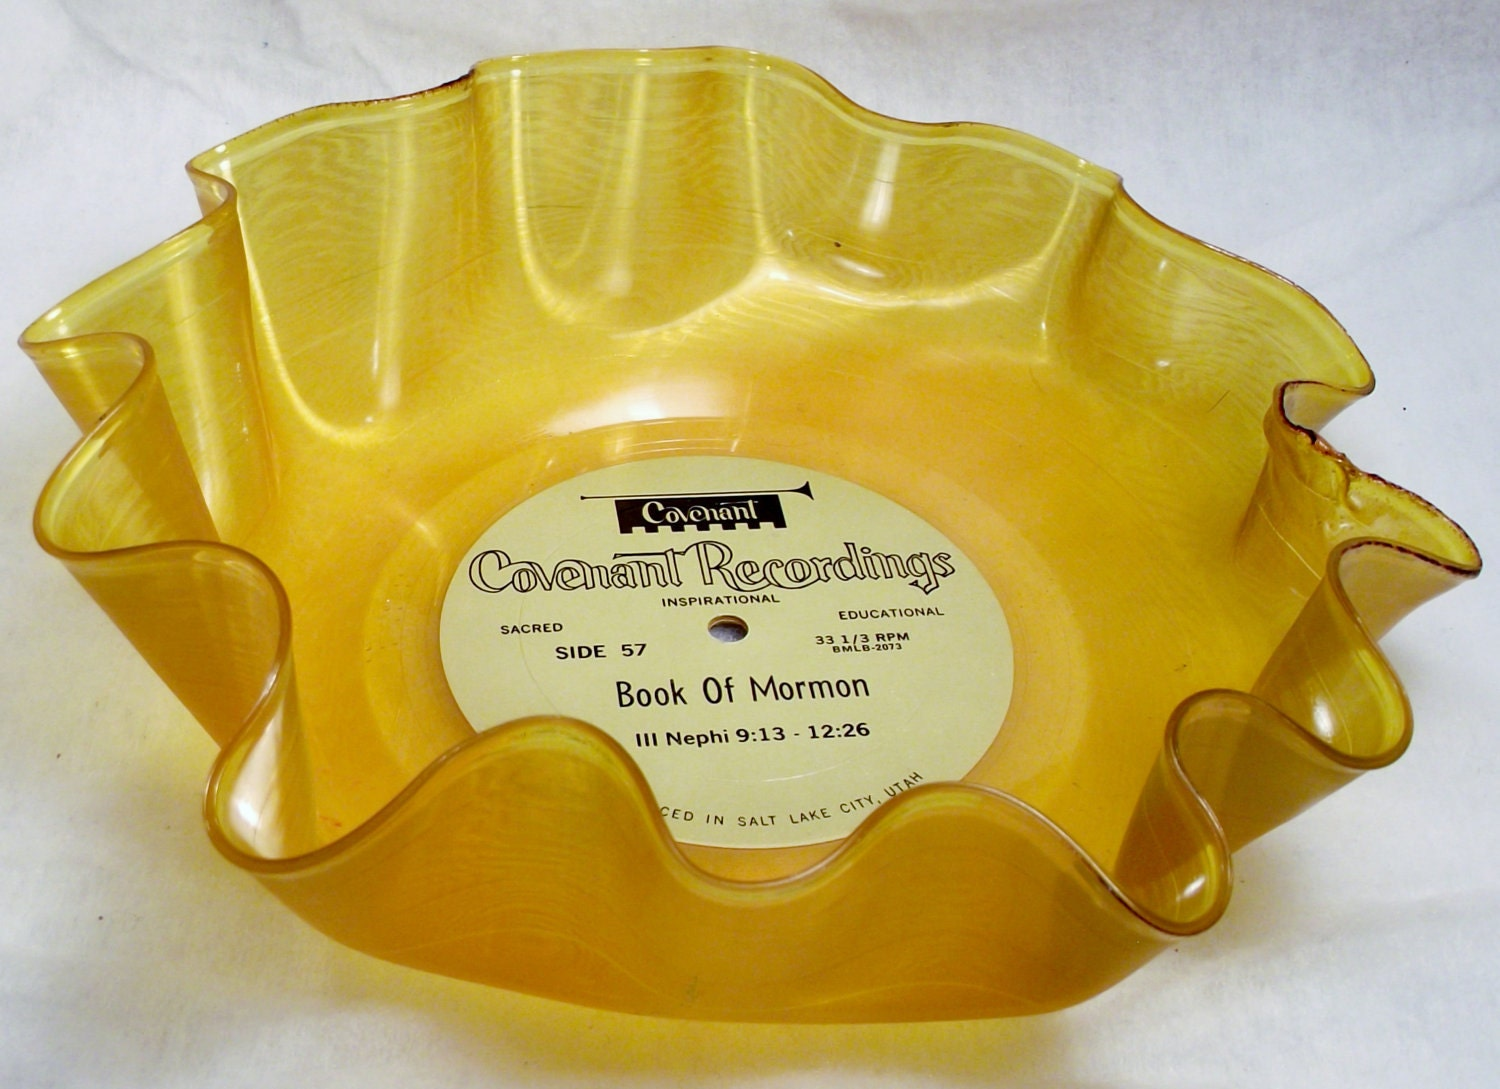 Orange/ Yellow Record Bowls are wonderful decorations for your house and more.